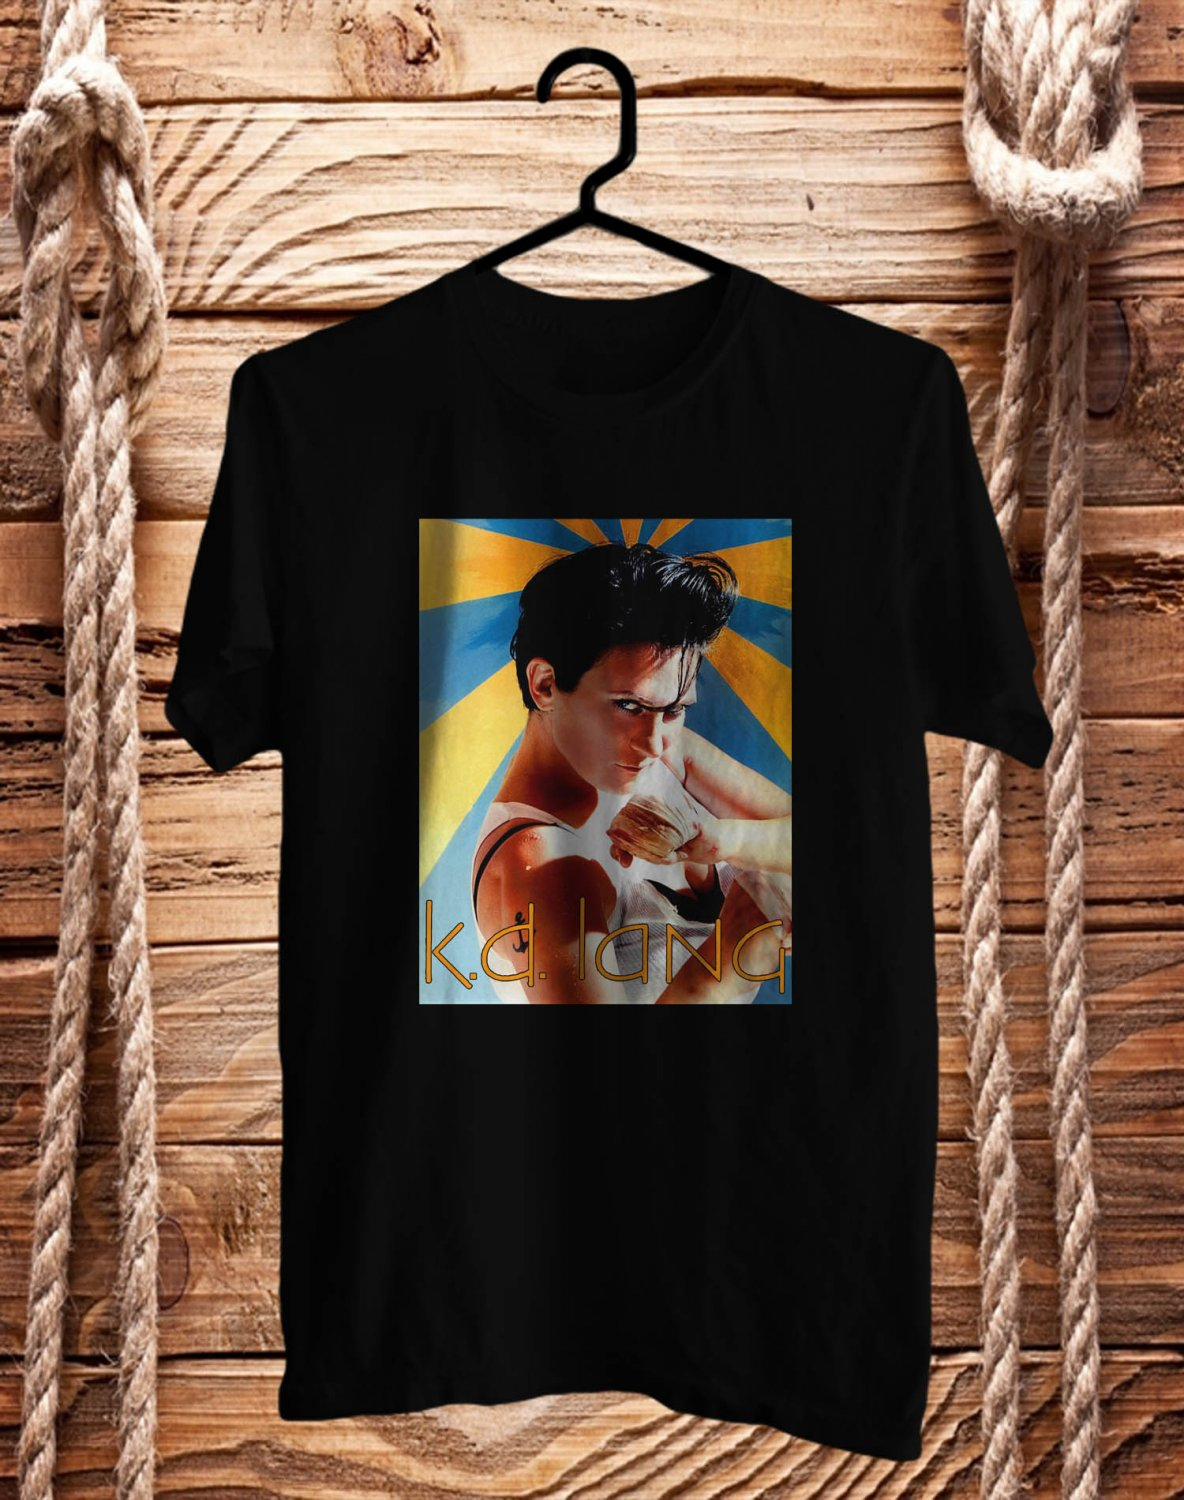 K.D. Lang Black Tee's Front Side by Complexart